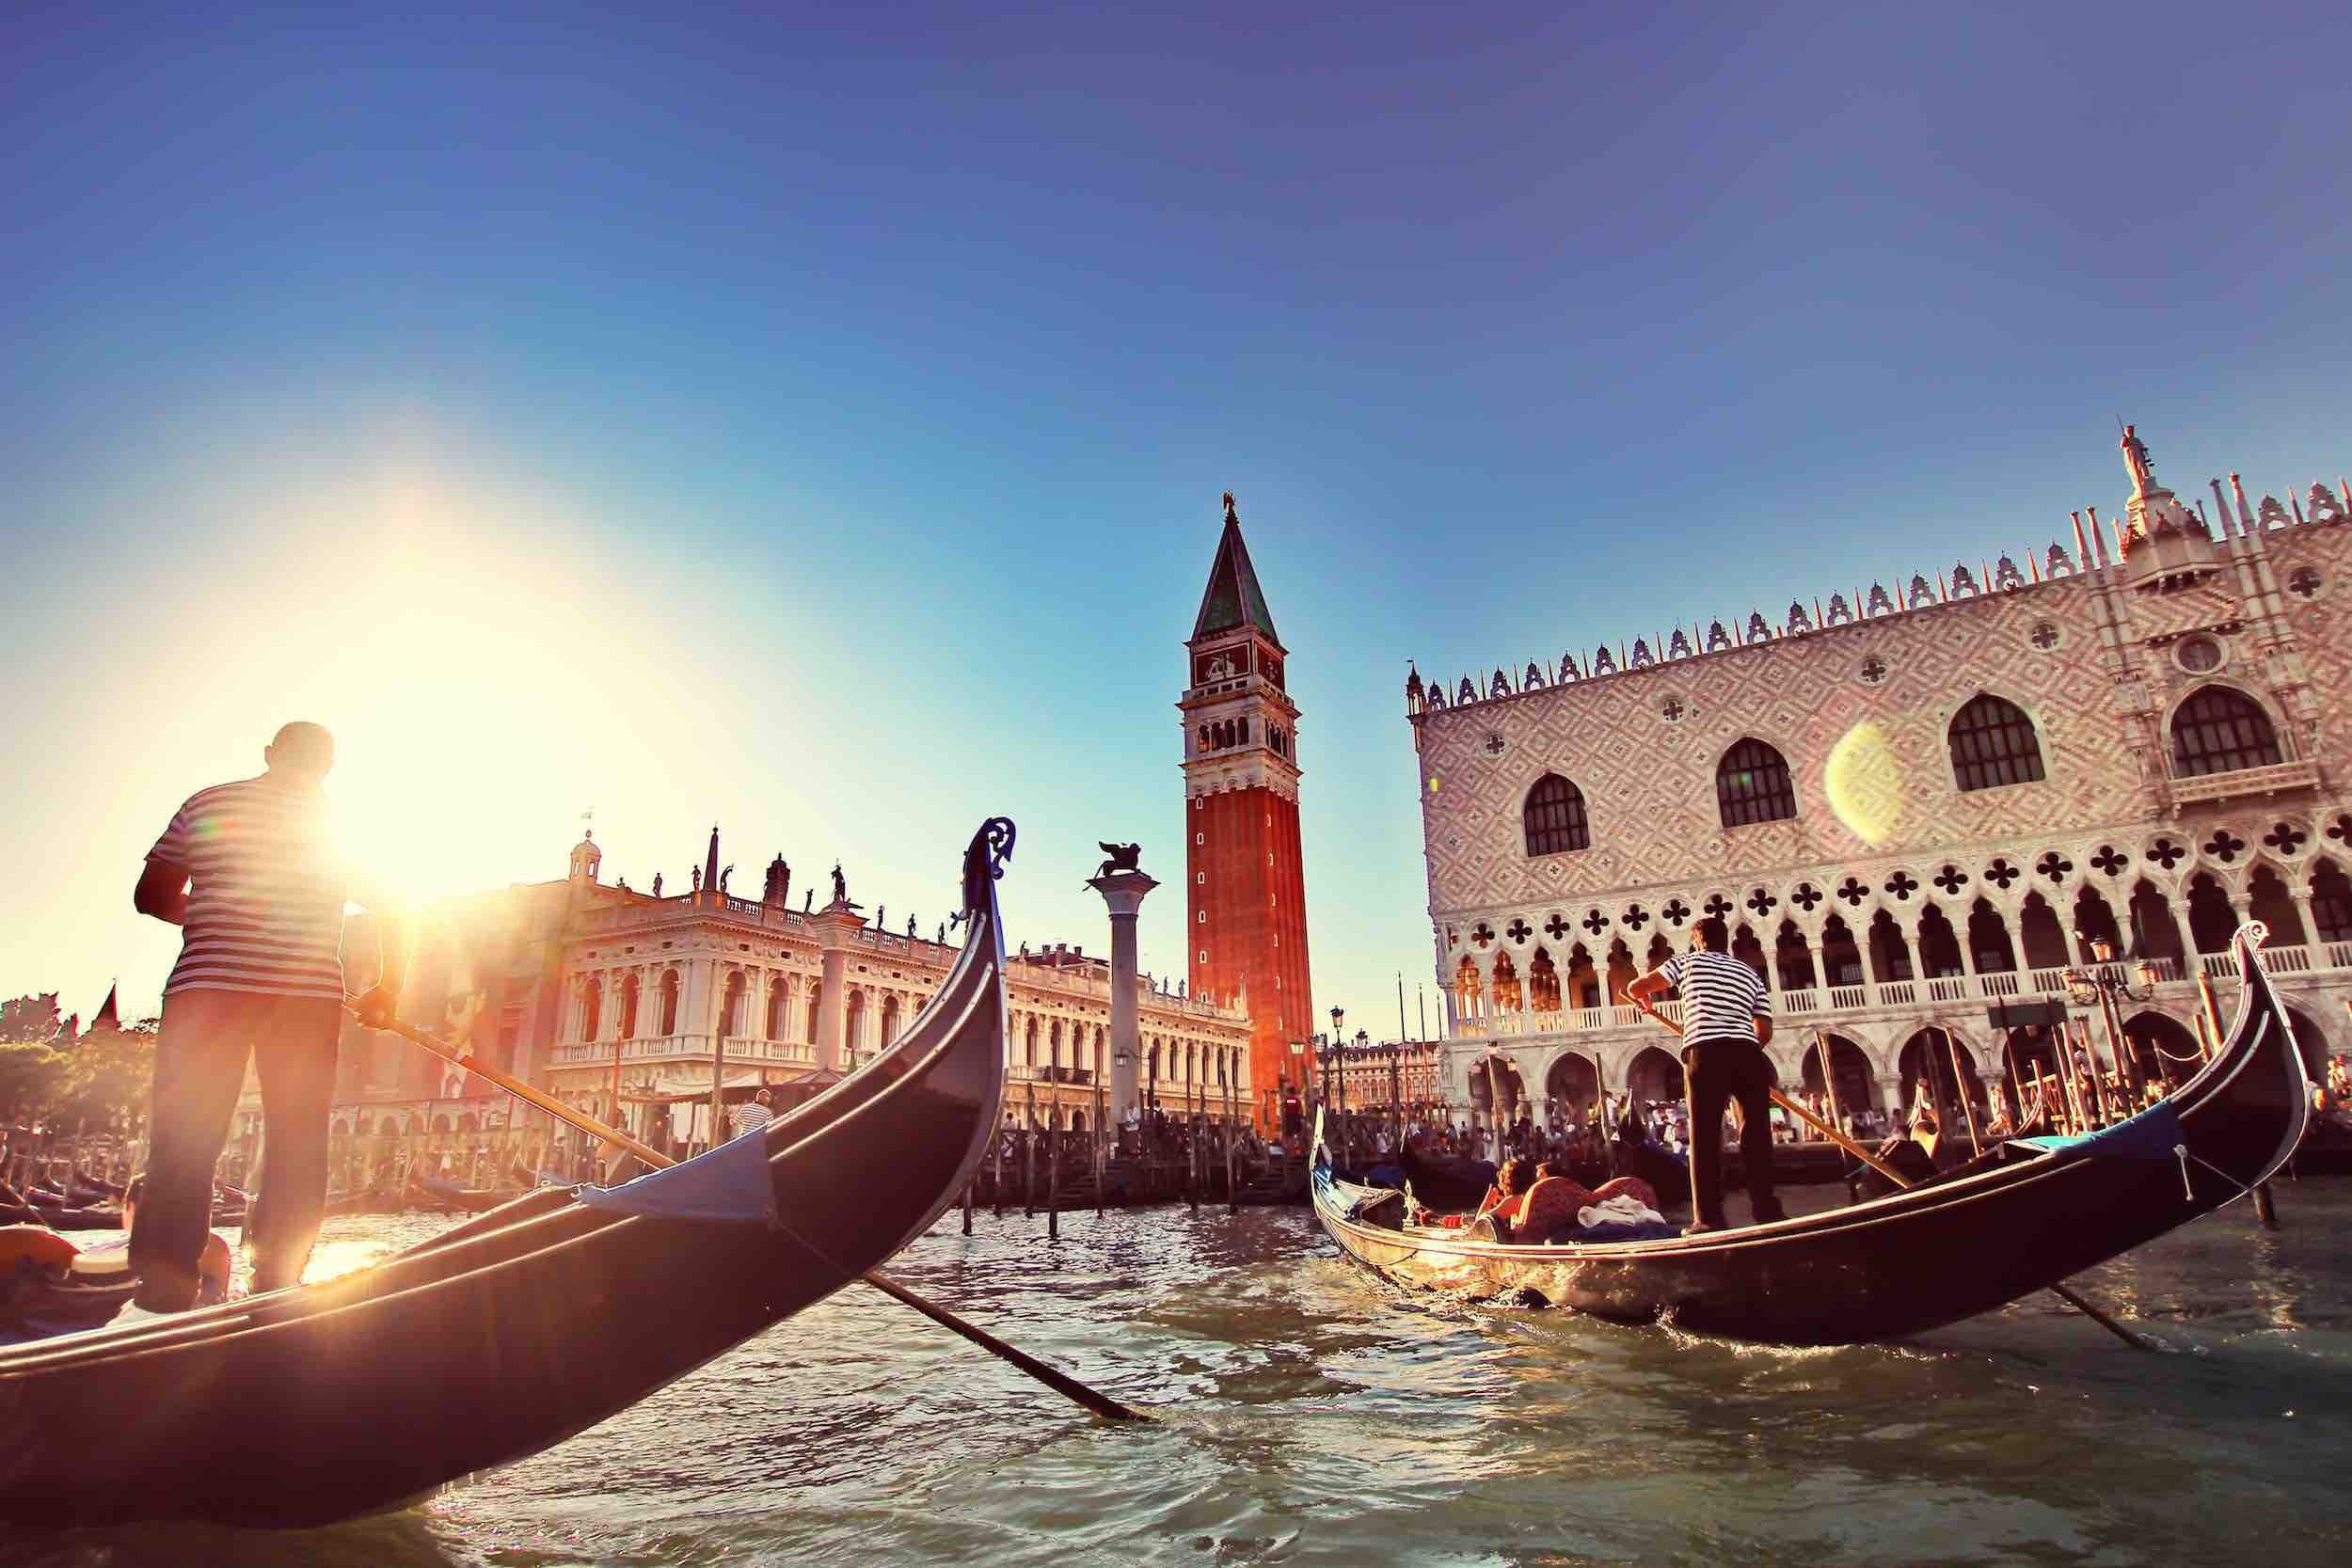 From Florence to Venice (10 hours)